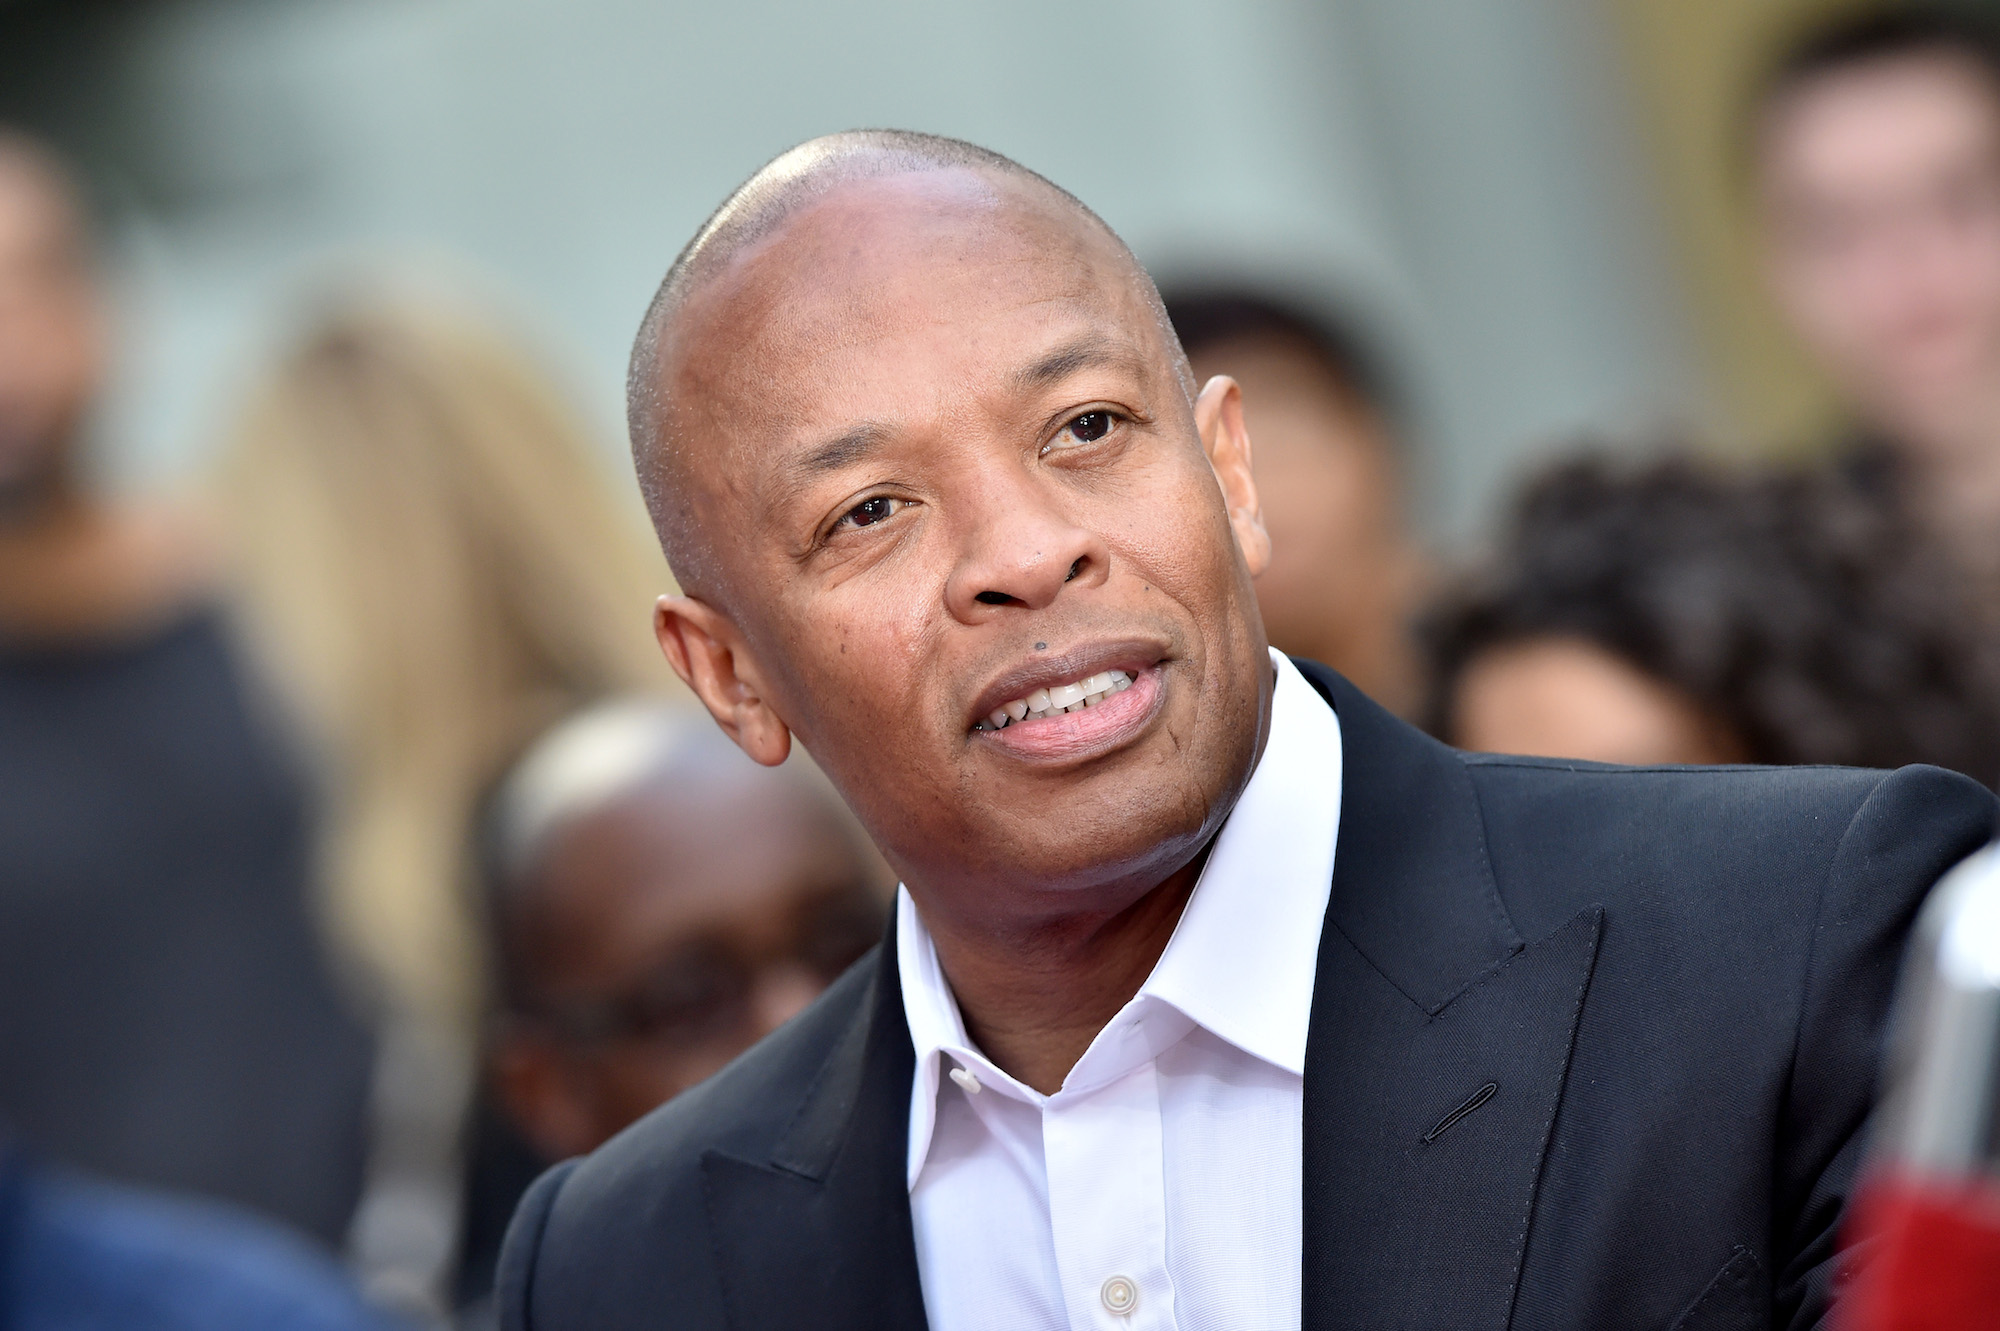 Dr. Dre Sends A Message To Fans And Followers From The Hospital